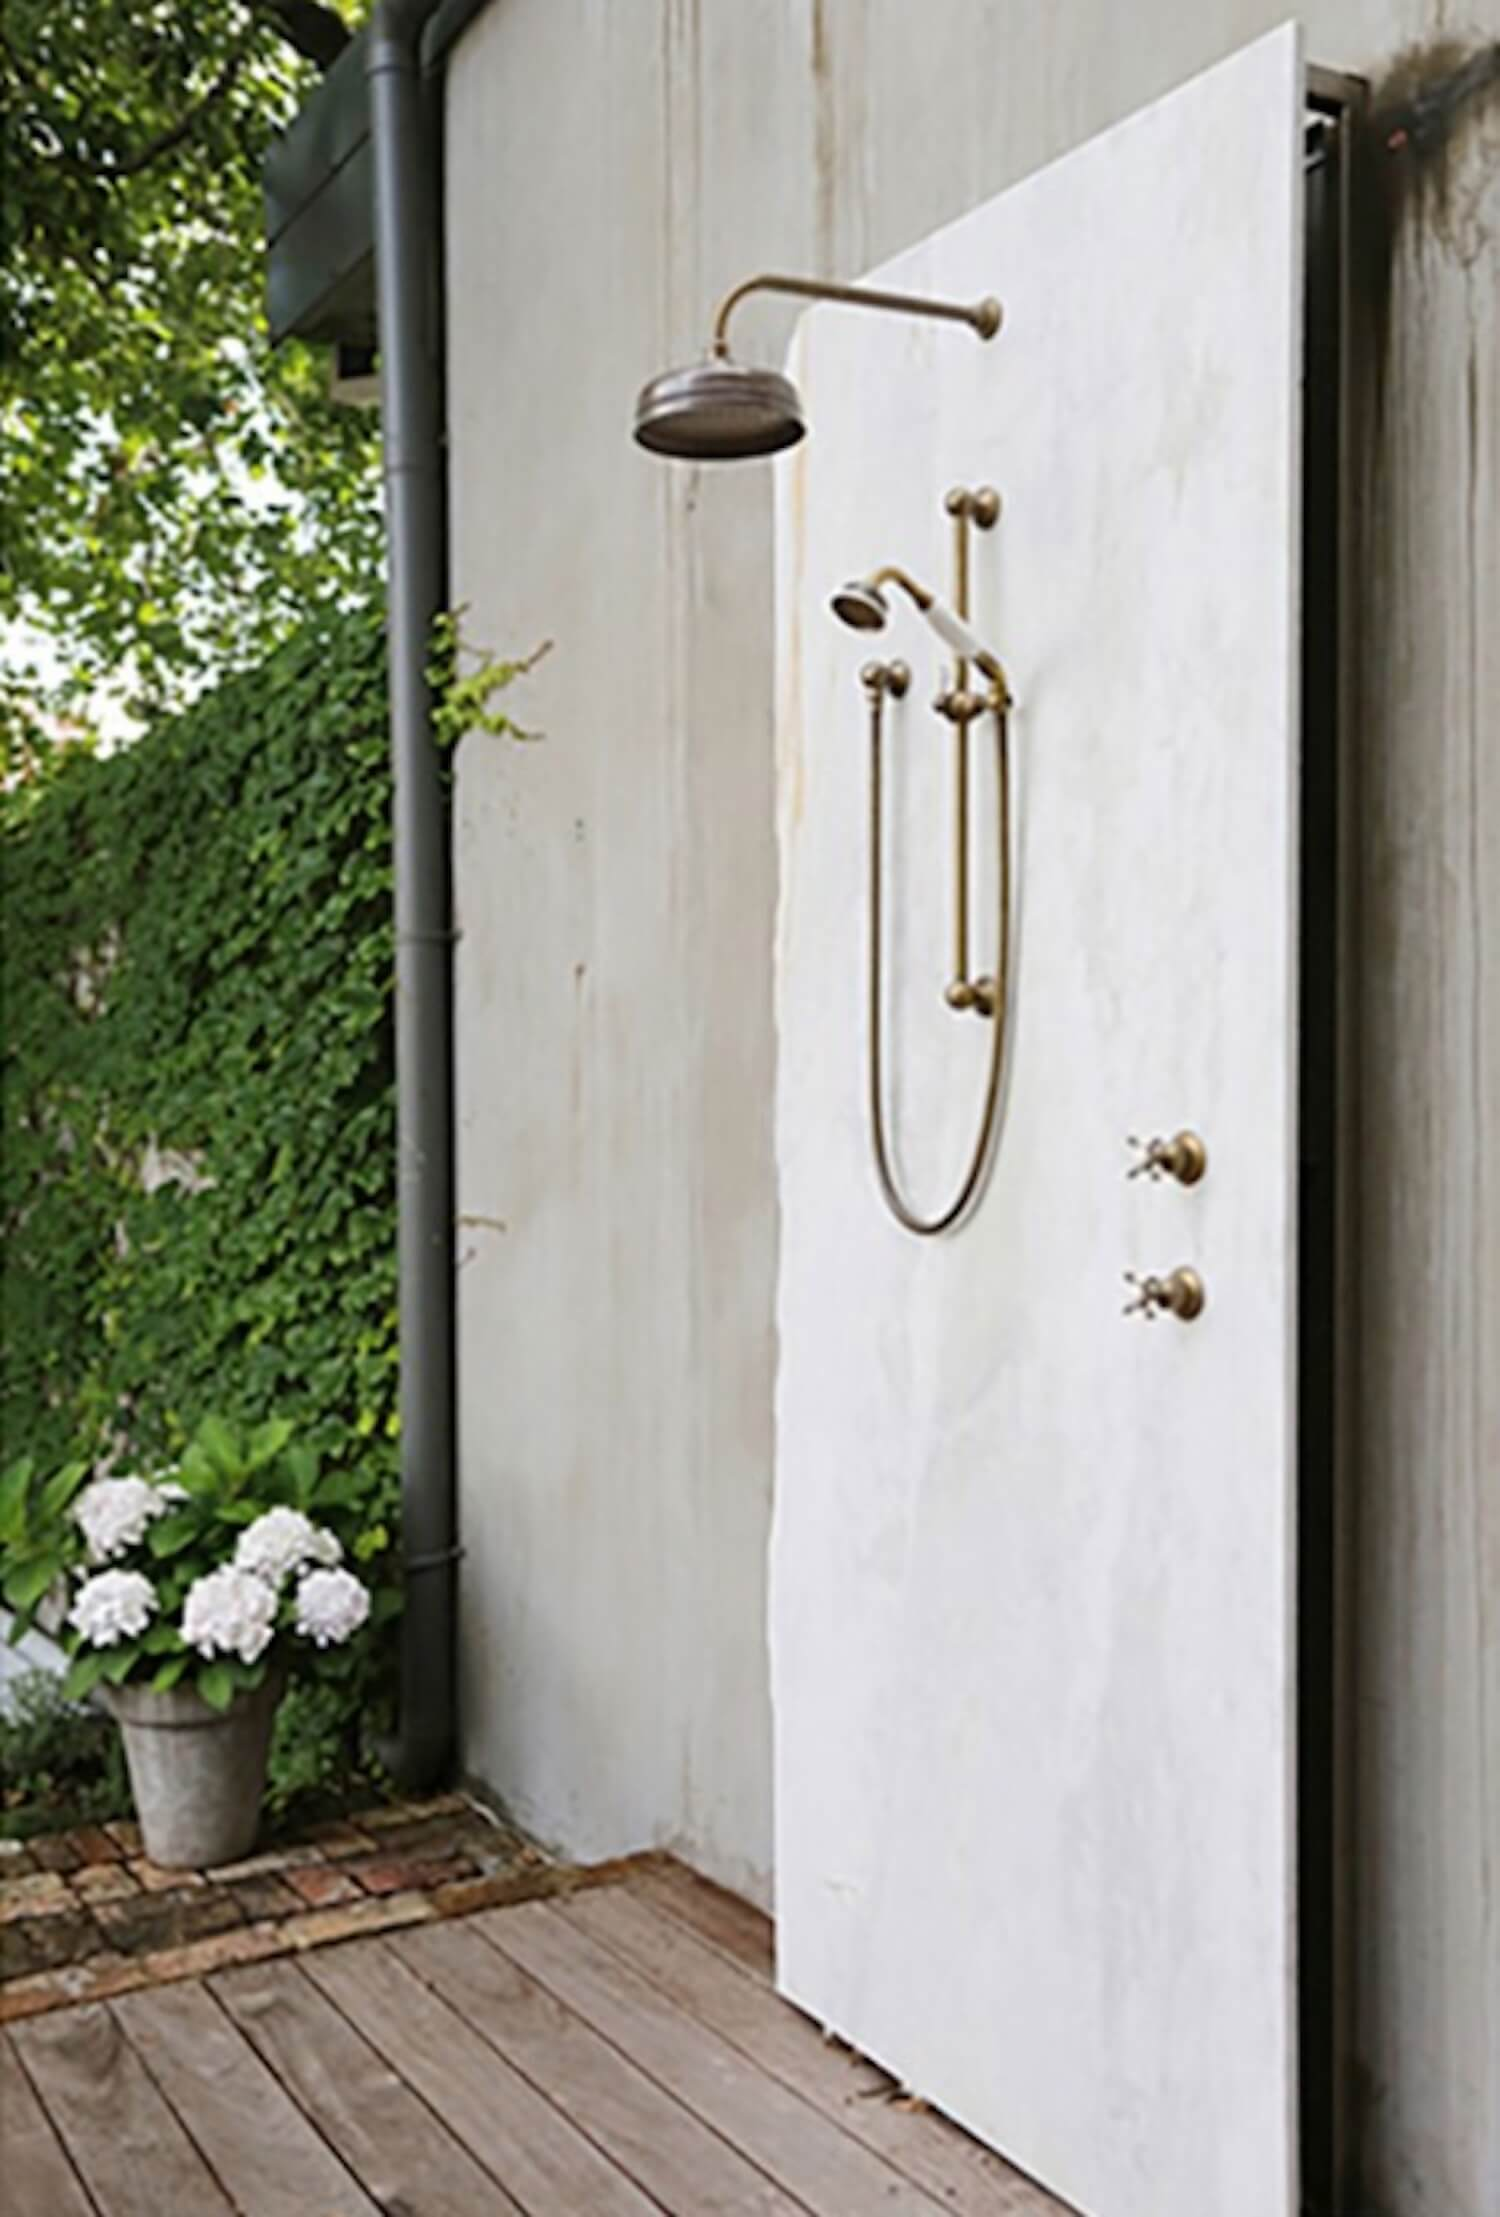 with panel jet denton showers hand shower outdoor two black